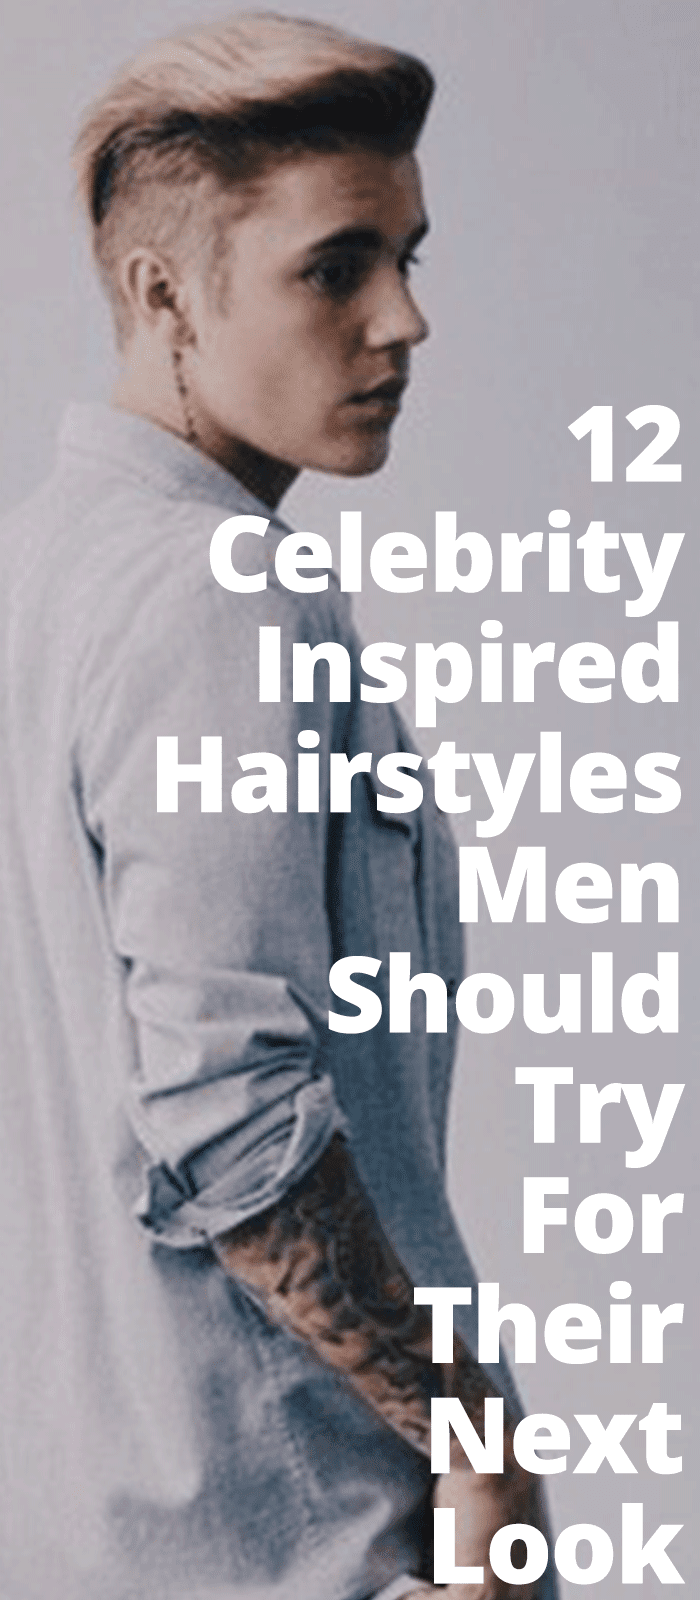 Celebrity Inspired Hairstyles